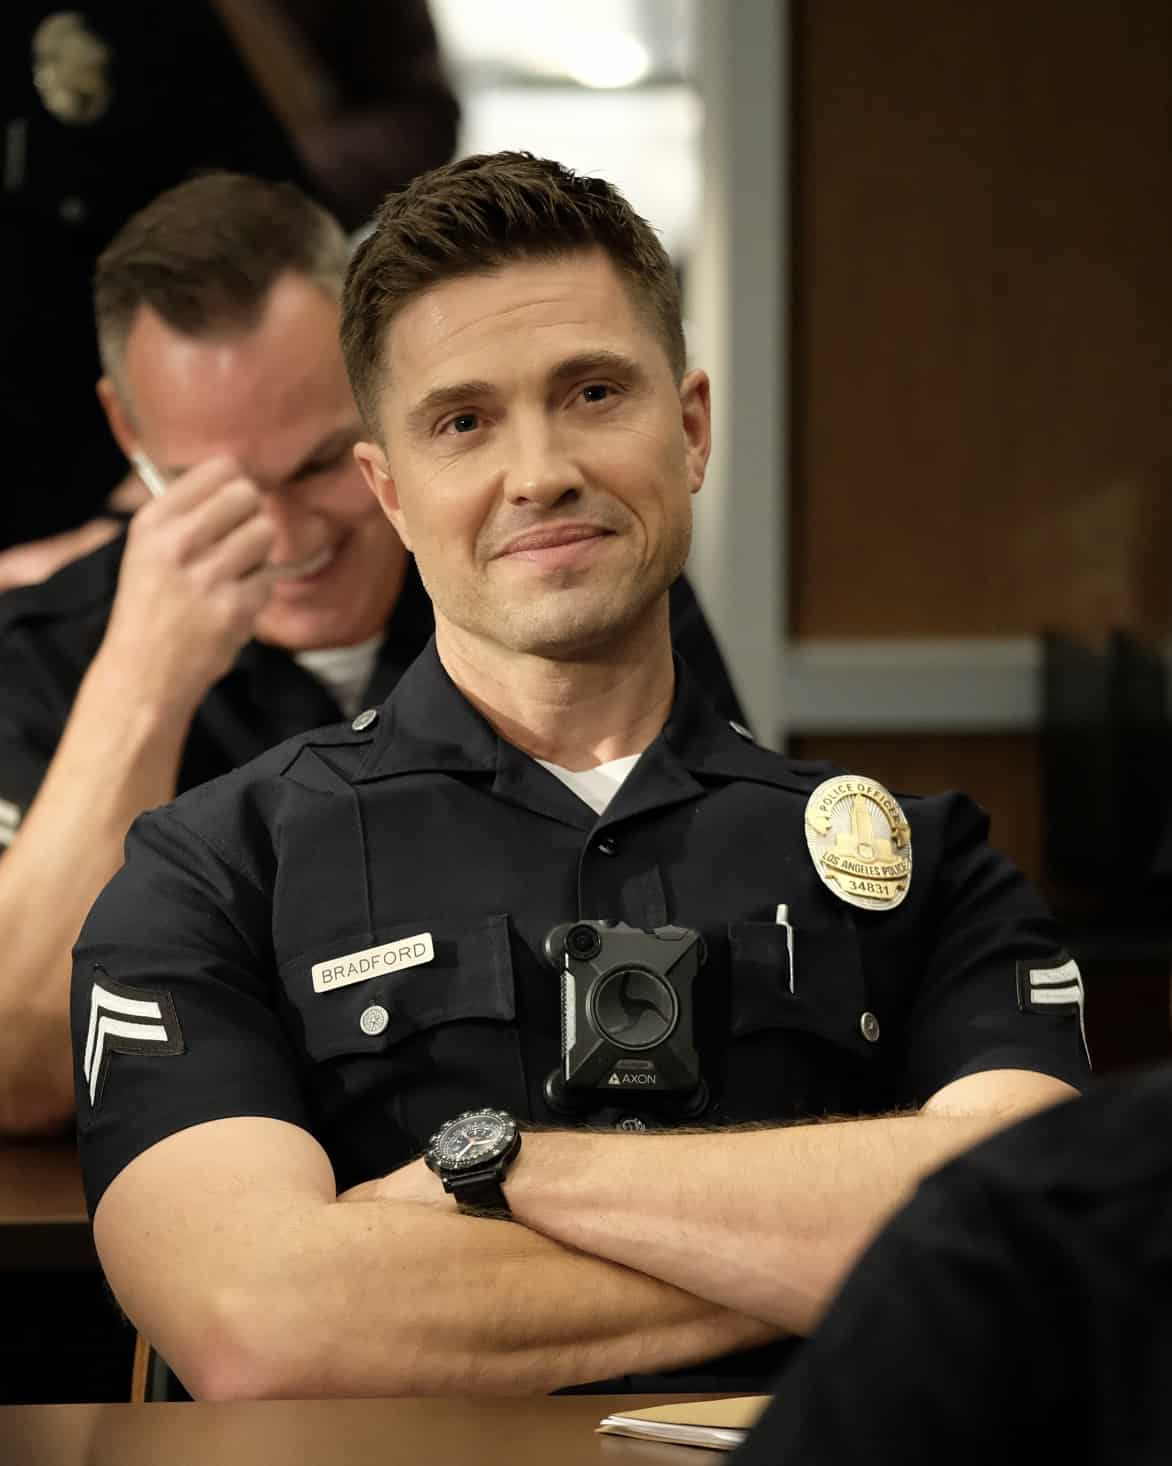 """THE ROOKIE Season 3 Episode 14 - """"Threshold"""" – Officer Nolan mildly injures himself while chasing down a shoplifter and the local DA wants to charge the suspect with assault despite Nolan's wishes. Meanwhile, Lucy goes undercover, Lopez' wedding venue is seized by the FBI and Nolan meets his new neighbor on the season finale of """"The Rookie,"""" SUNDAY, MAY 16 (10:00-11:00 p.m. EDT), on ABC. (ABC/Erica Parise) ERIC WINTER"""